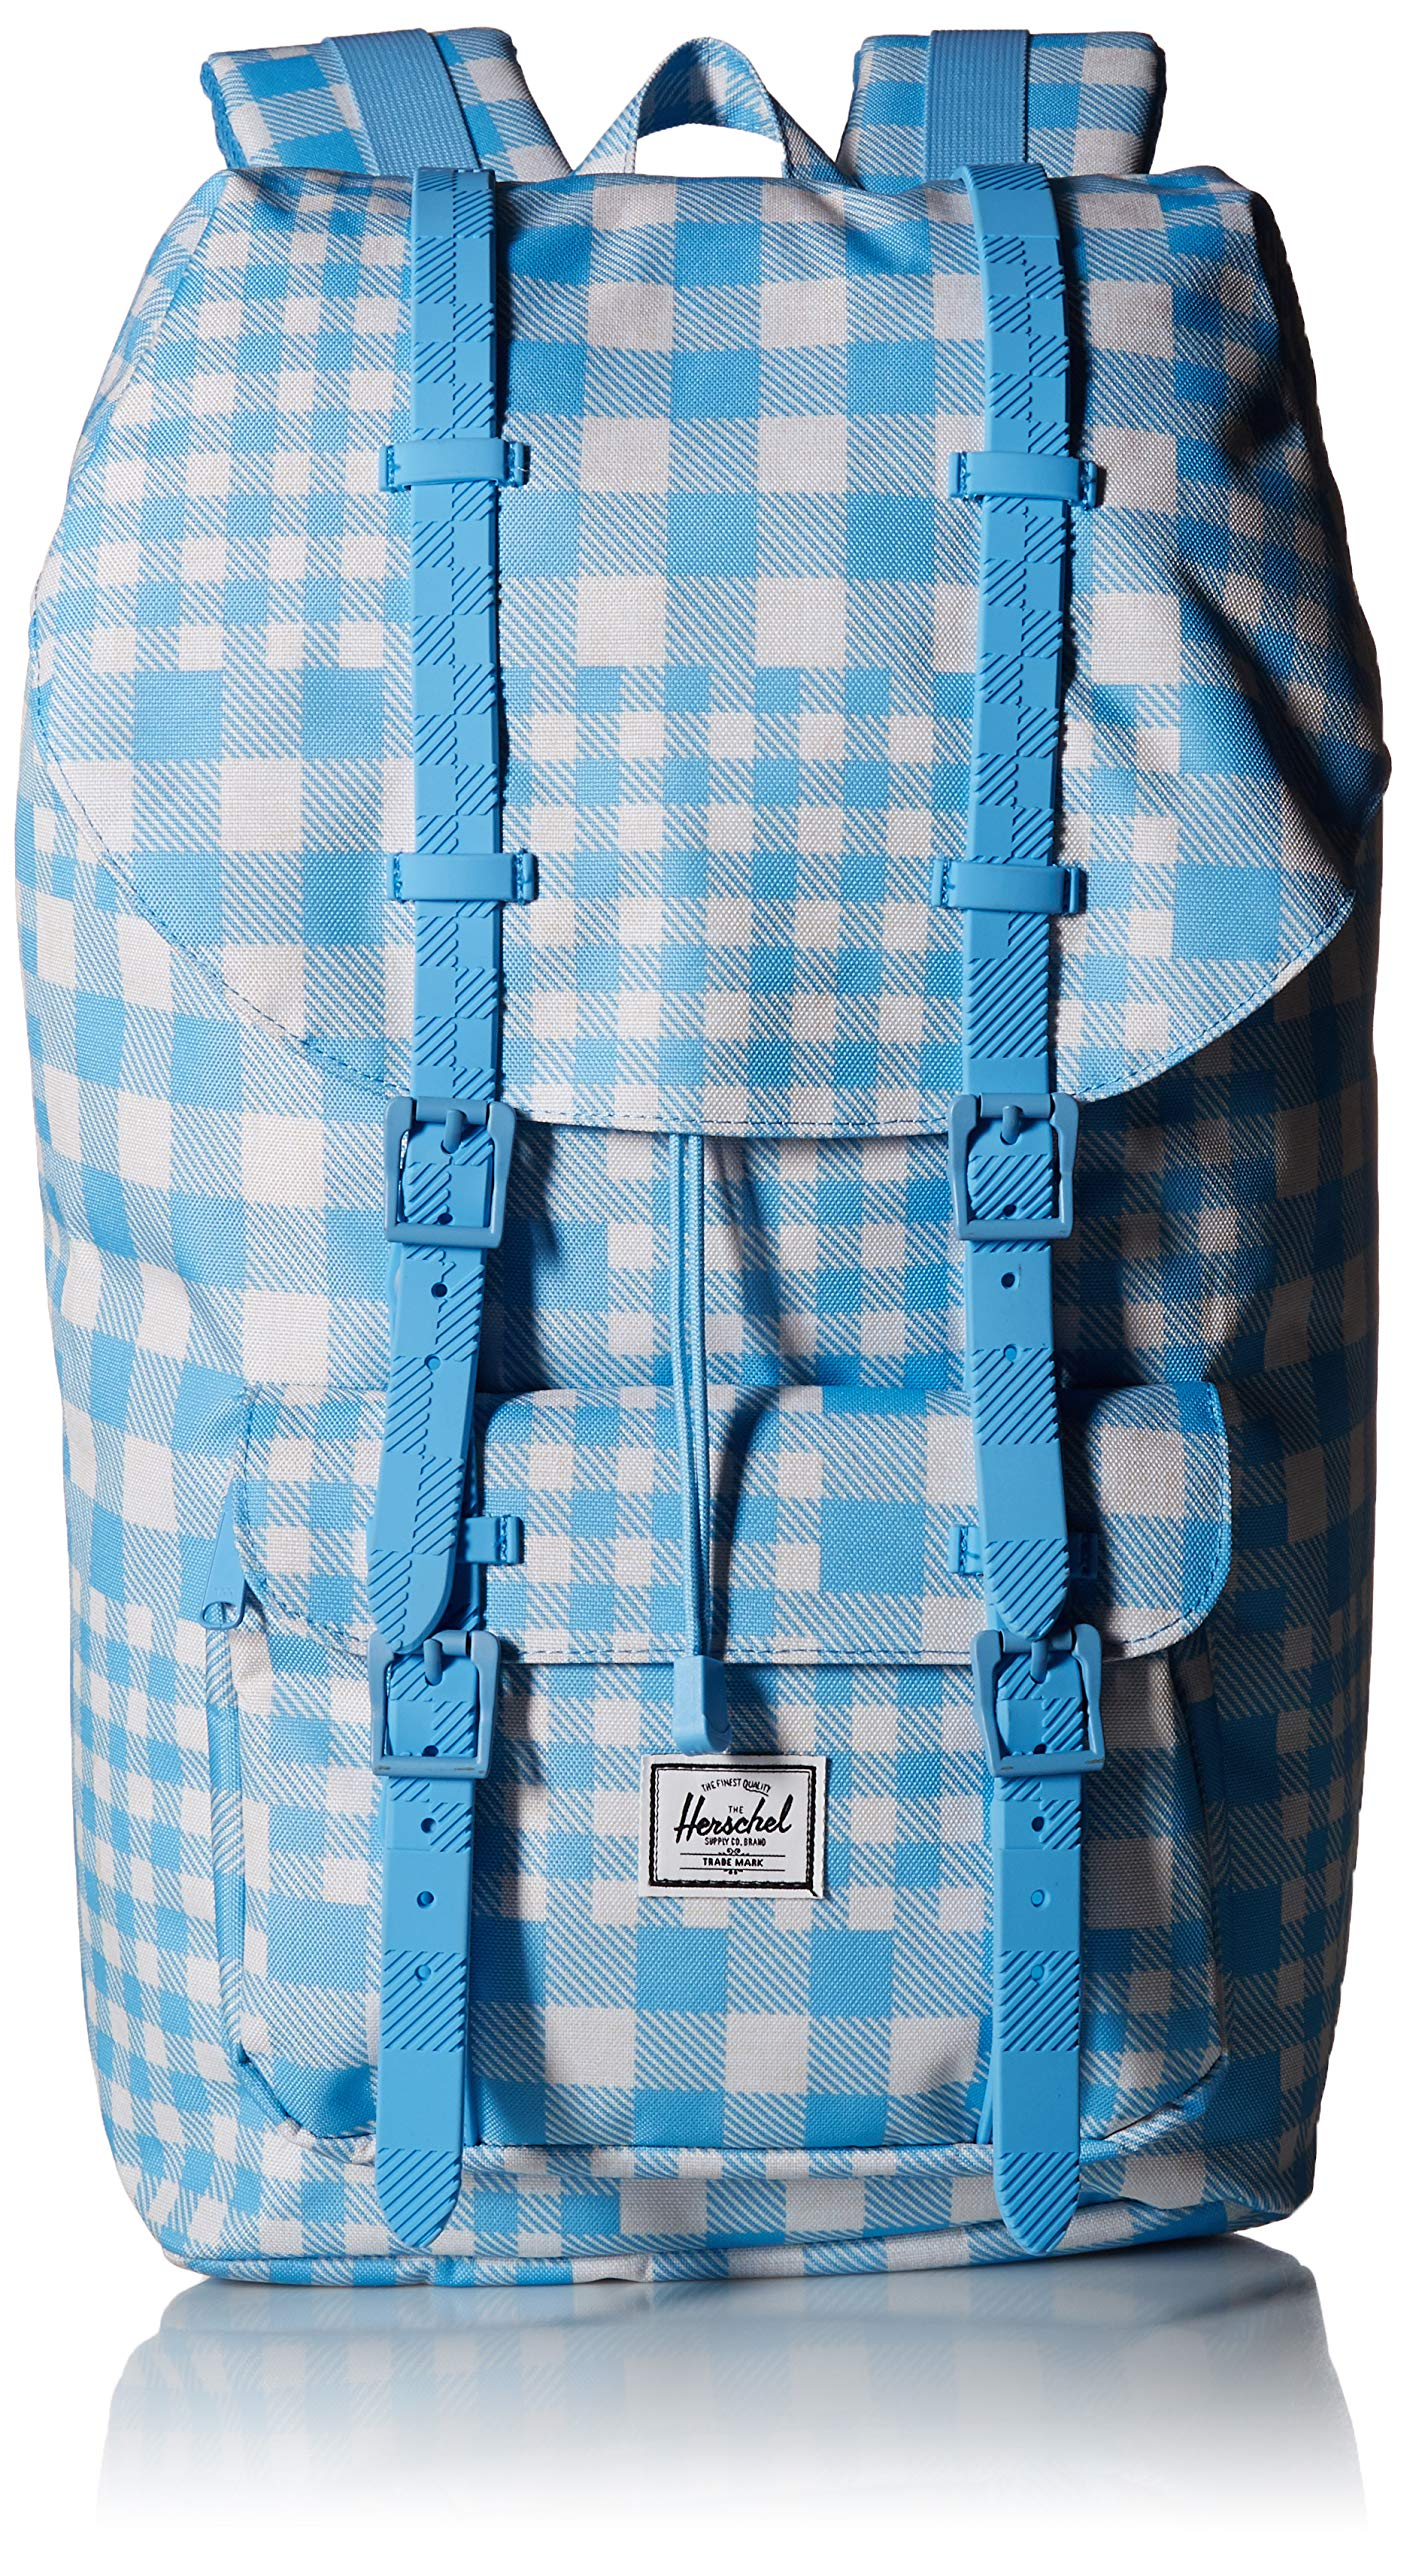 Herschel Supply Co. Little America Flapover Backpack, Gingham Alaskan Blue/Rubber, Classic 25L by Herschel